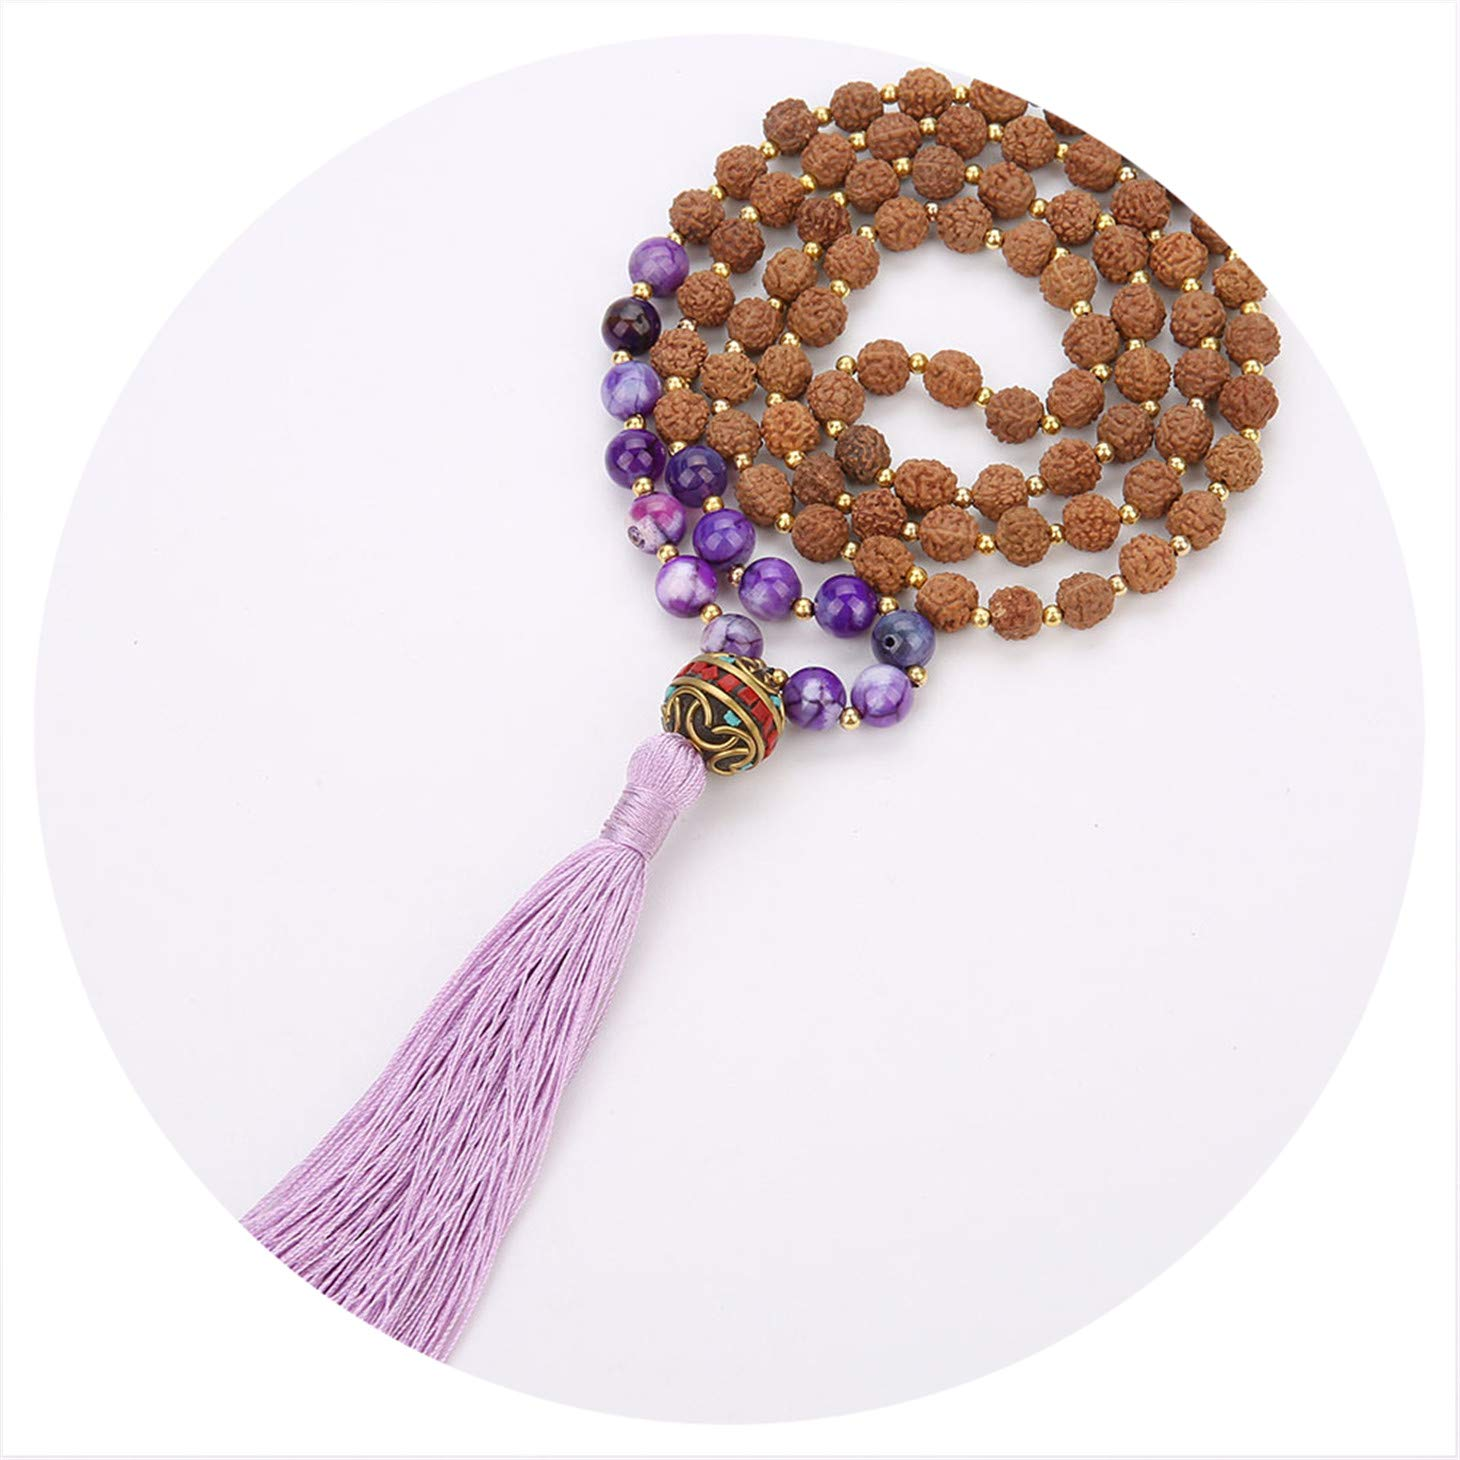 Olive Tayl Ethnic Vintage Long Tassel Necklace Handmade Rudraksha Nepalese Beads Pendant Necklace Meditation P